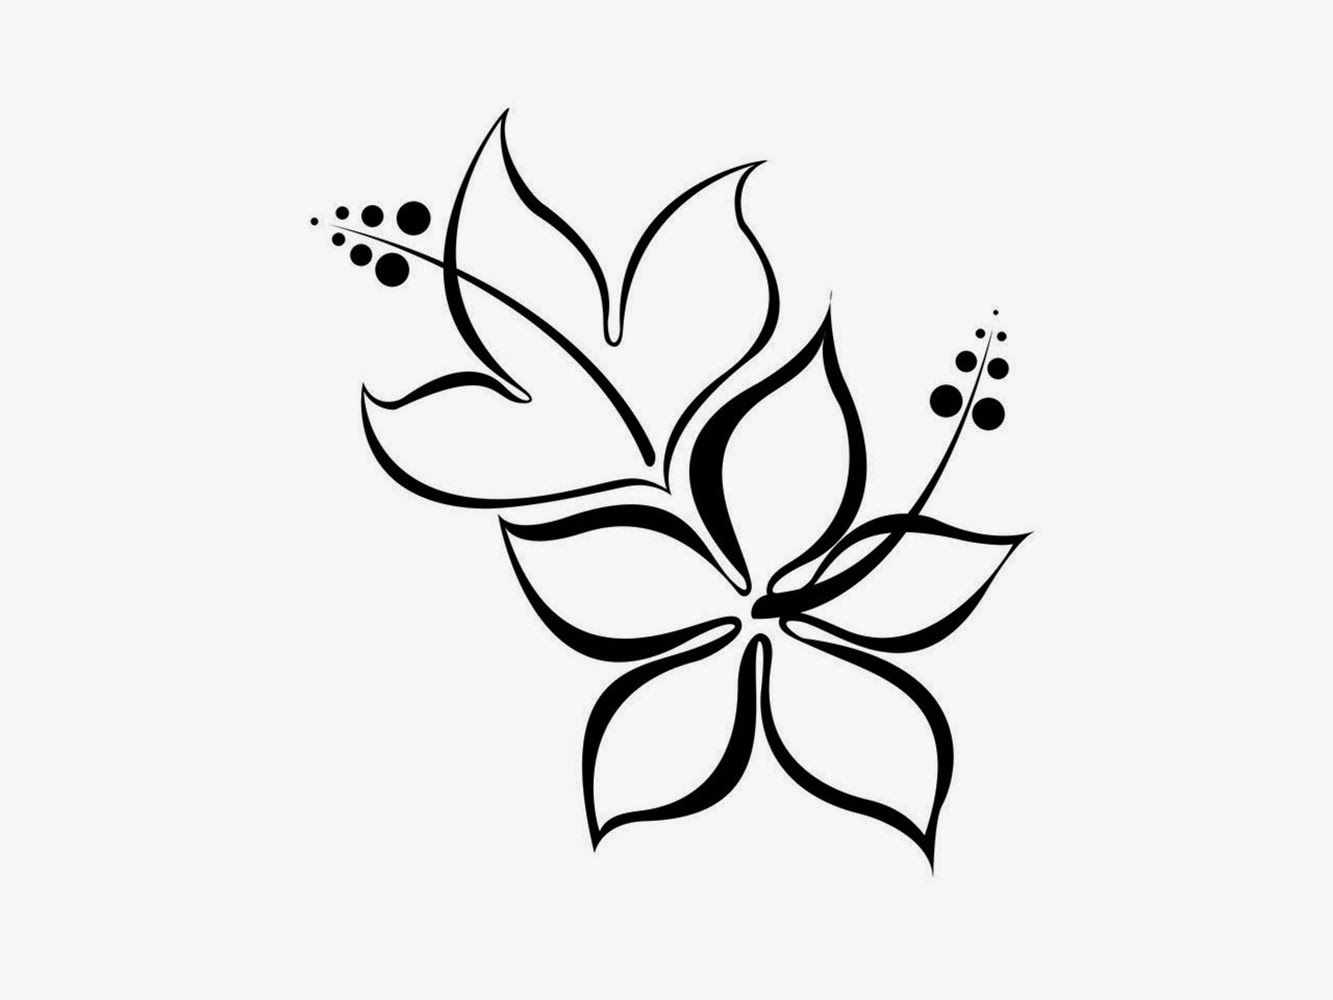 Black And White Flower Design With Images Hibiscus Flower